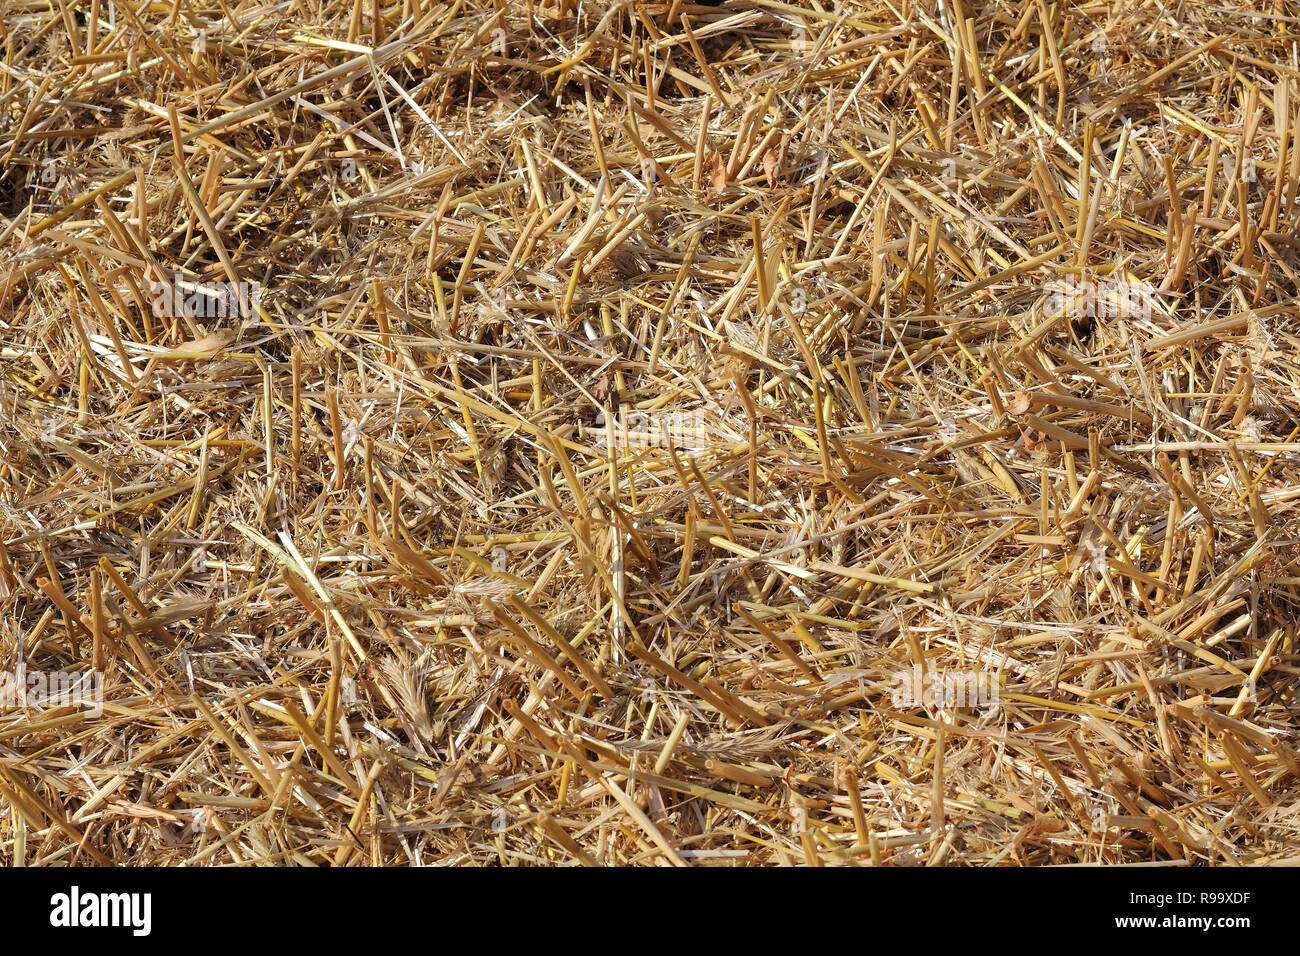 Stubble on a harvested cornfield - Stock Image